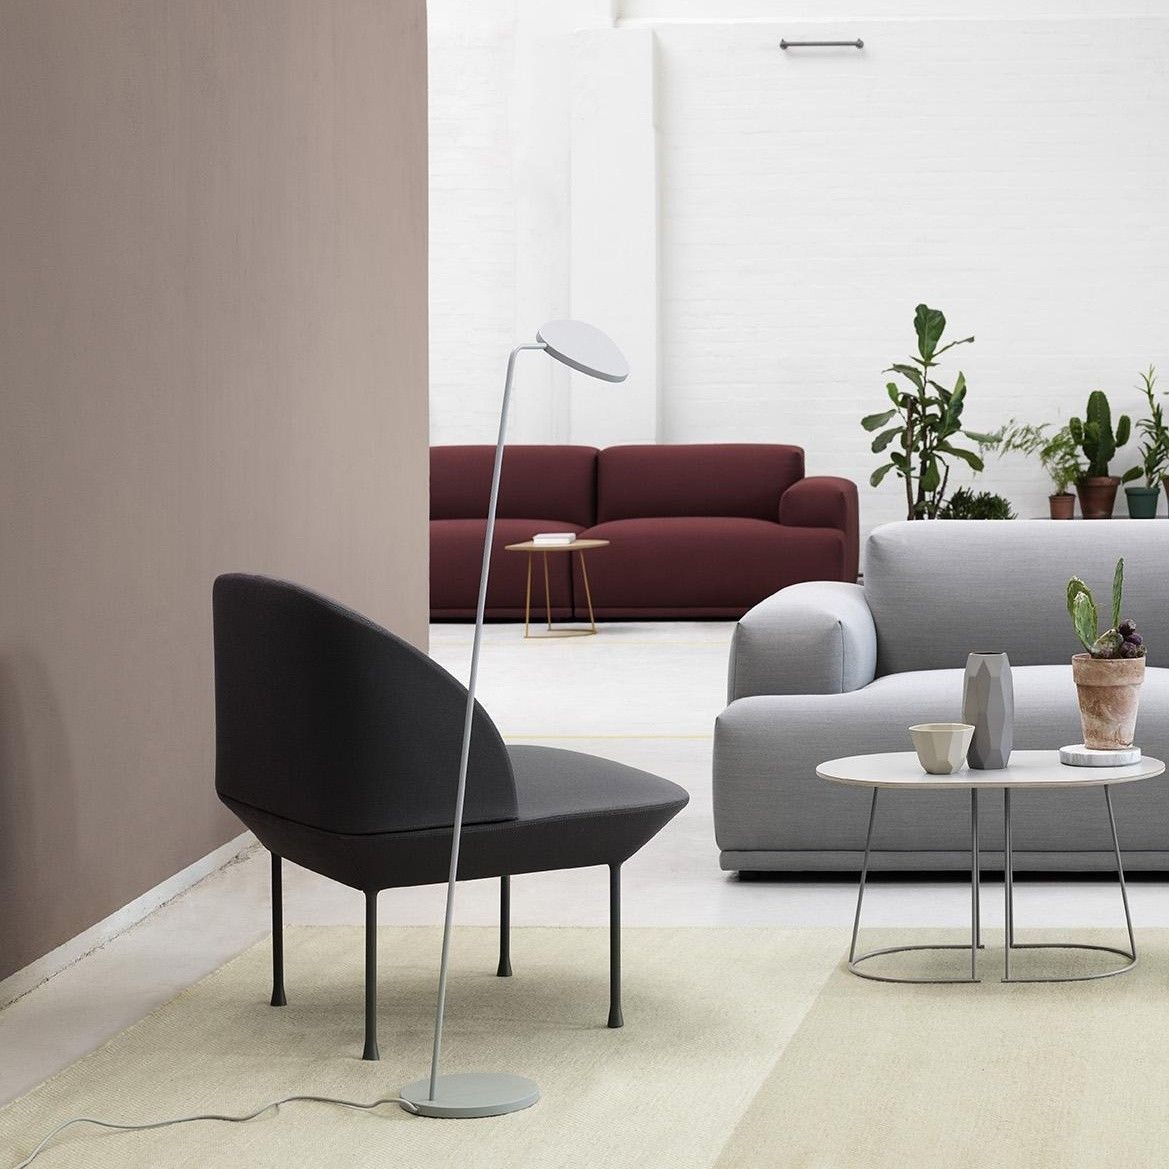 Muuto Leaf Led Floor Lamp Contemporary Home Decor Living Room Inspiration Lamps Living Room